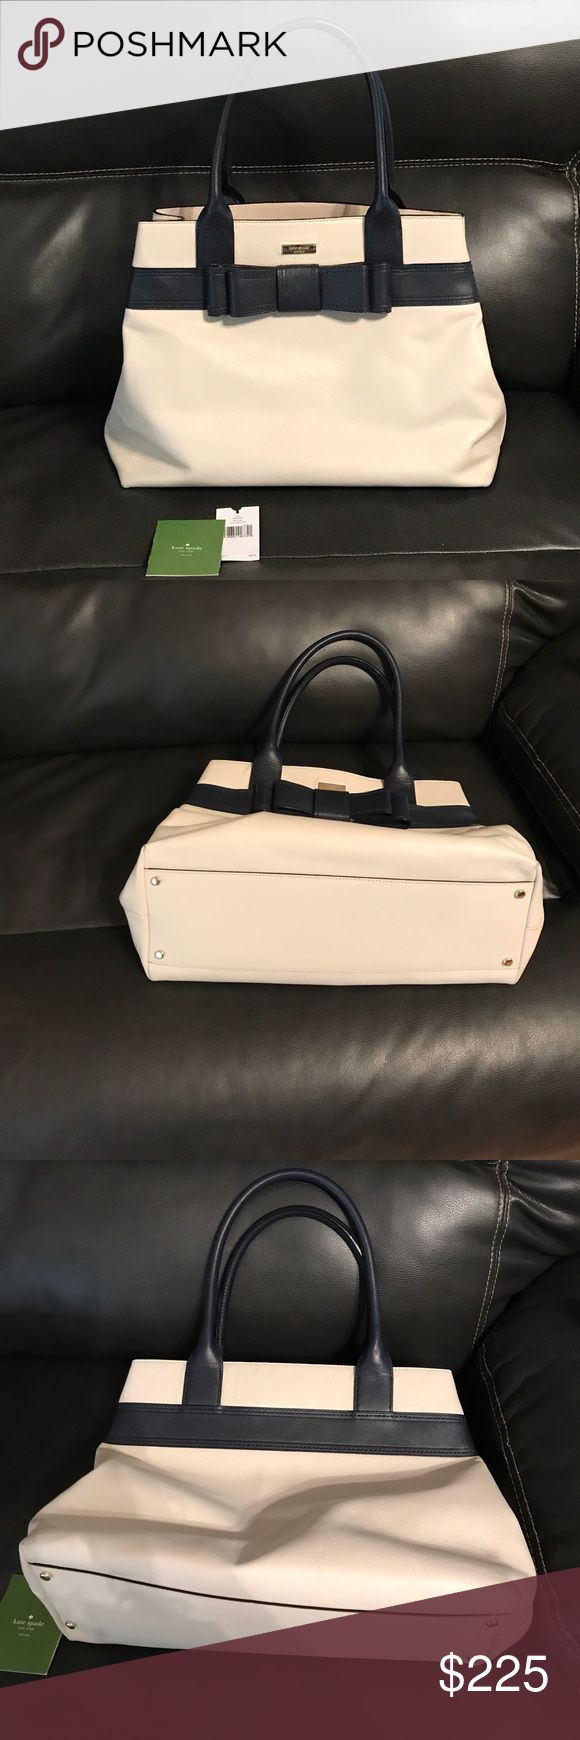 💯% Authentic Kate Spade Off White & Navy Purse Excellent Condition. Only carried one month. Purchased at Nordstrom. 100% cow leather. No stains inside or out. Navy with off white cream color. Handle carry . Three compartments inside with cellphone holders. Style Alice Court , diehl, WKRU2947, clcrm/mdnt 196. 100% authentic, I still have tags. Measures approximately 16.5 across bottom of purse, height is approximately 12 inches, handle drop approximately 9 inches.  No trades. kate spade Bags…